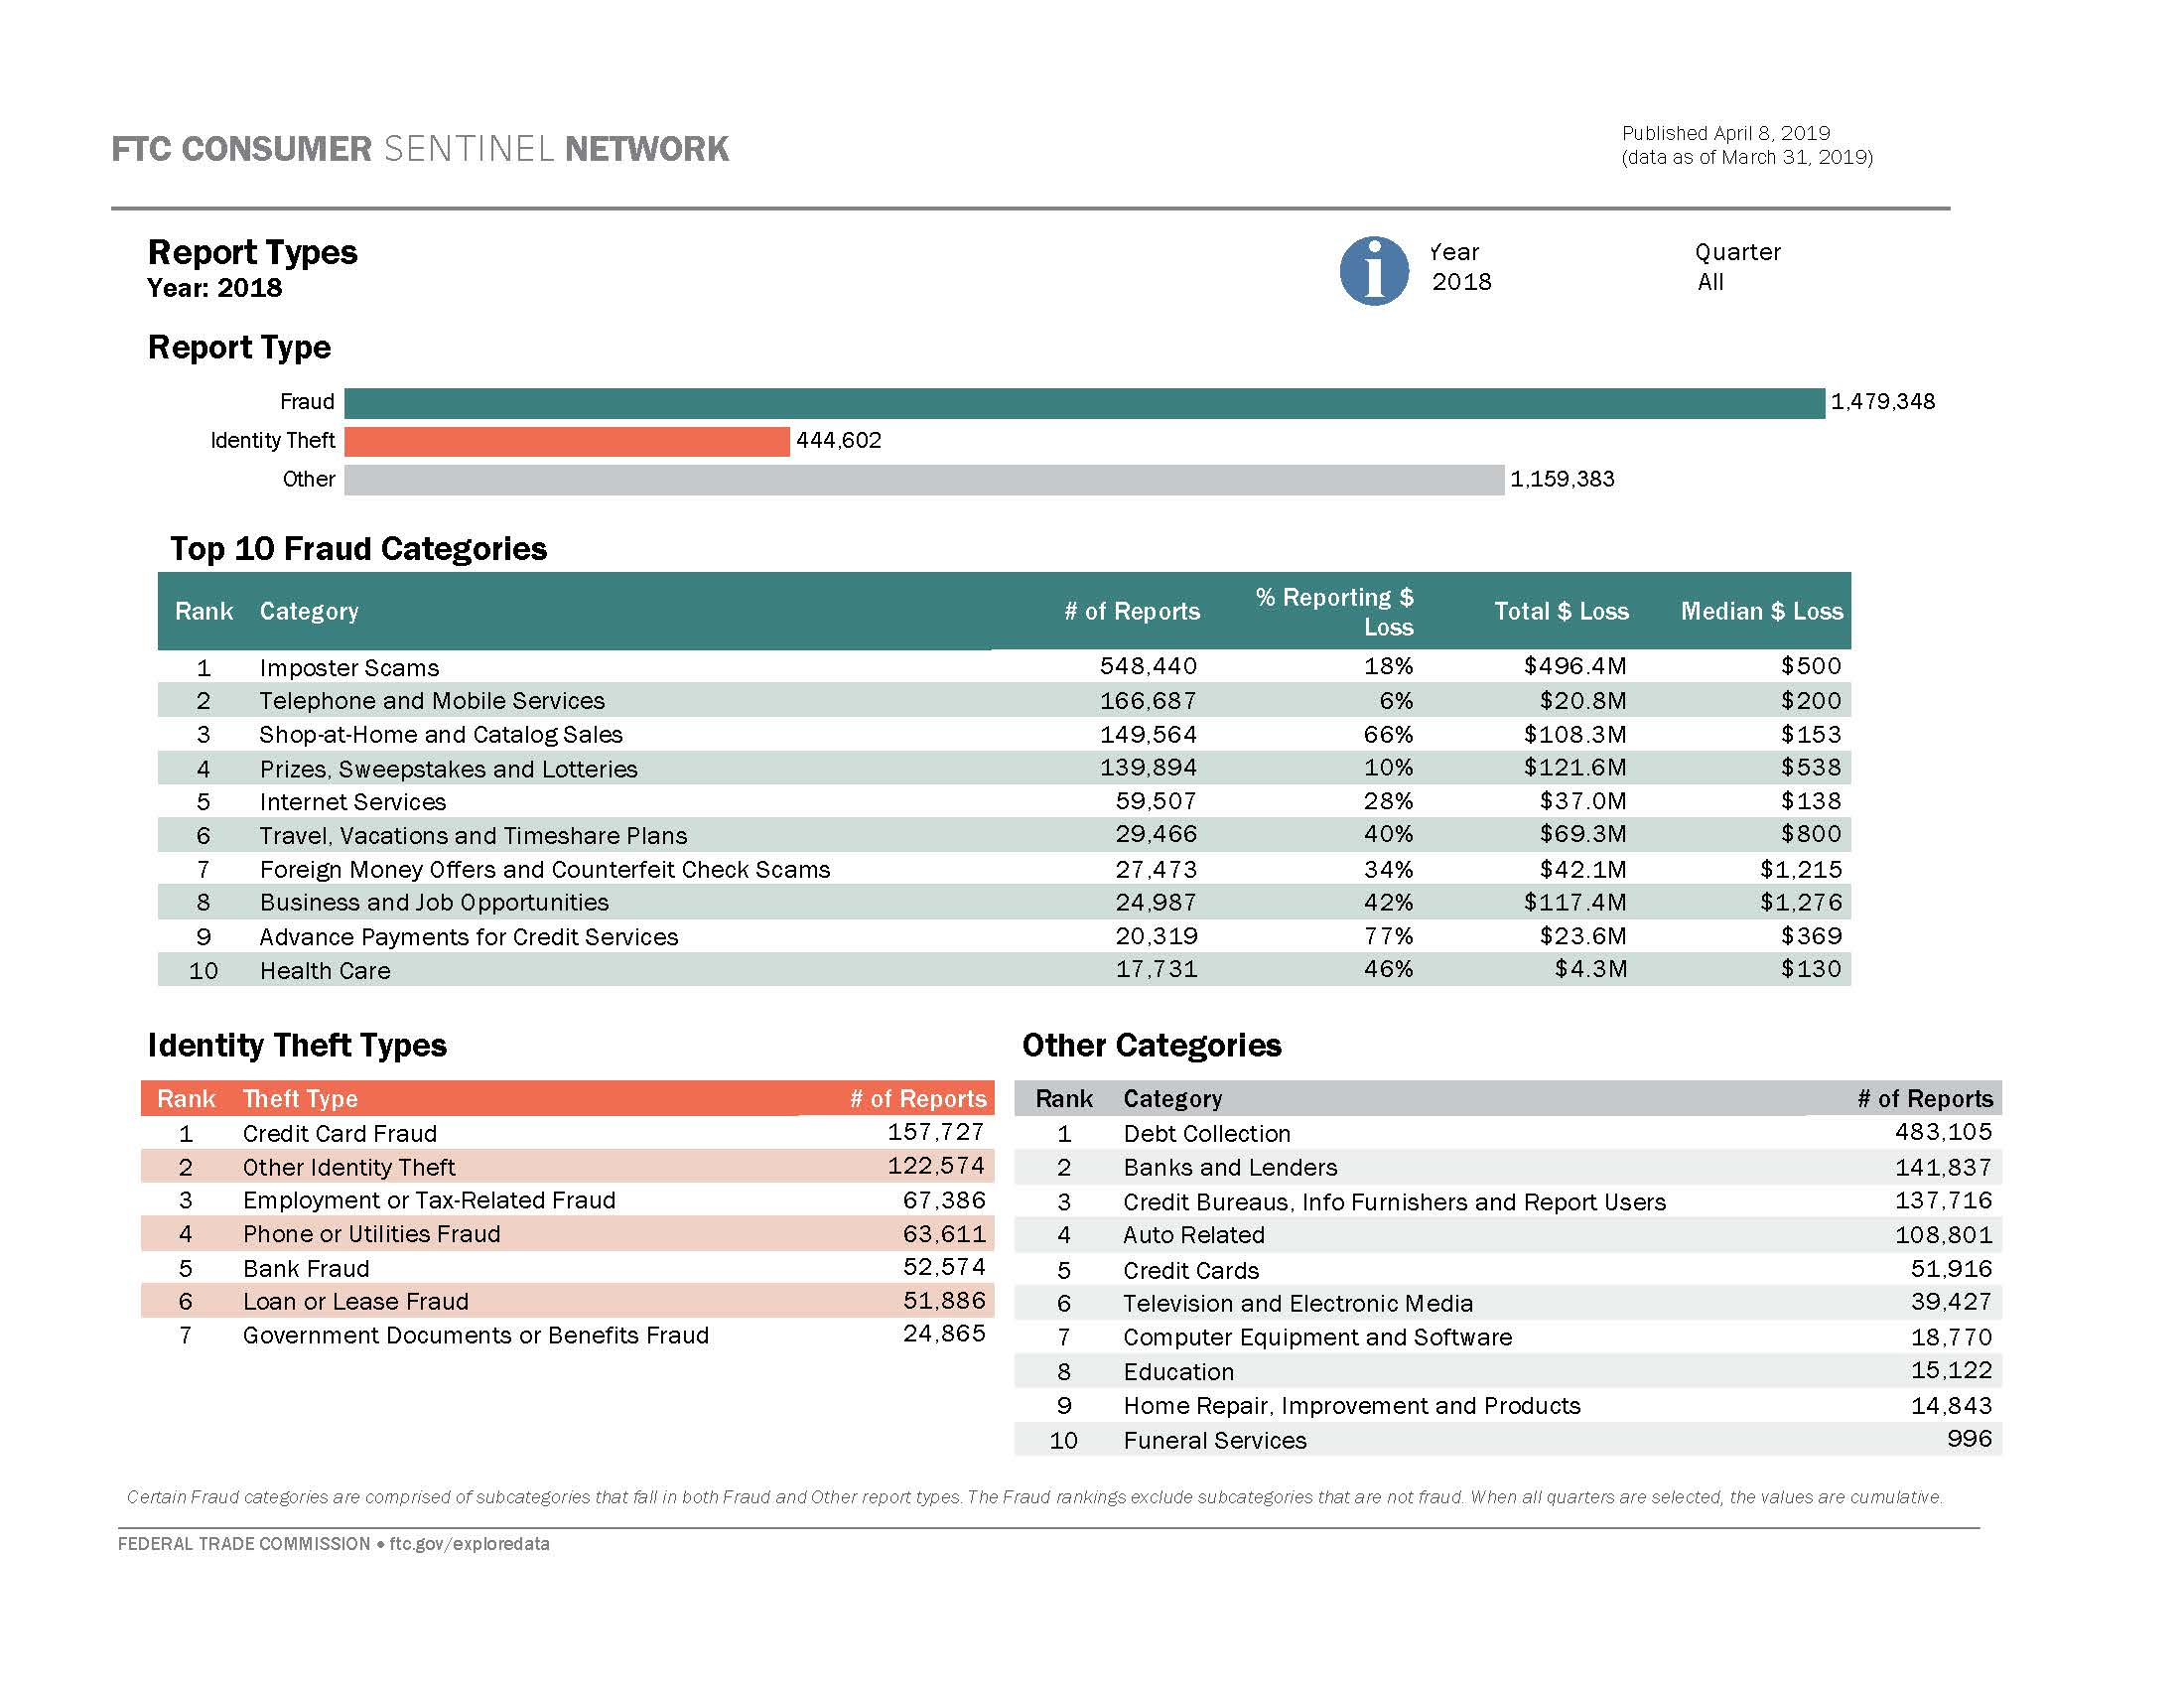 Link to interactive dashboard showing breakdown of report types and top reported categories for fraud, id theft, and other consumer problems.